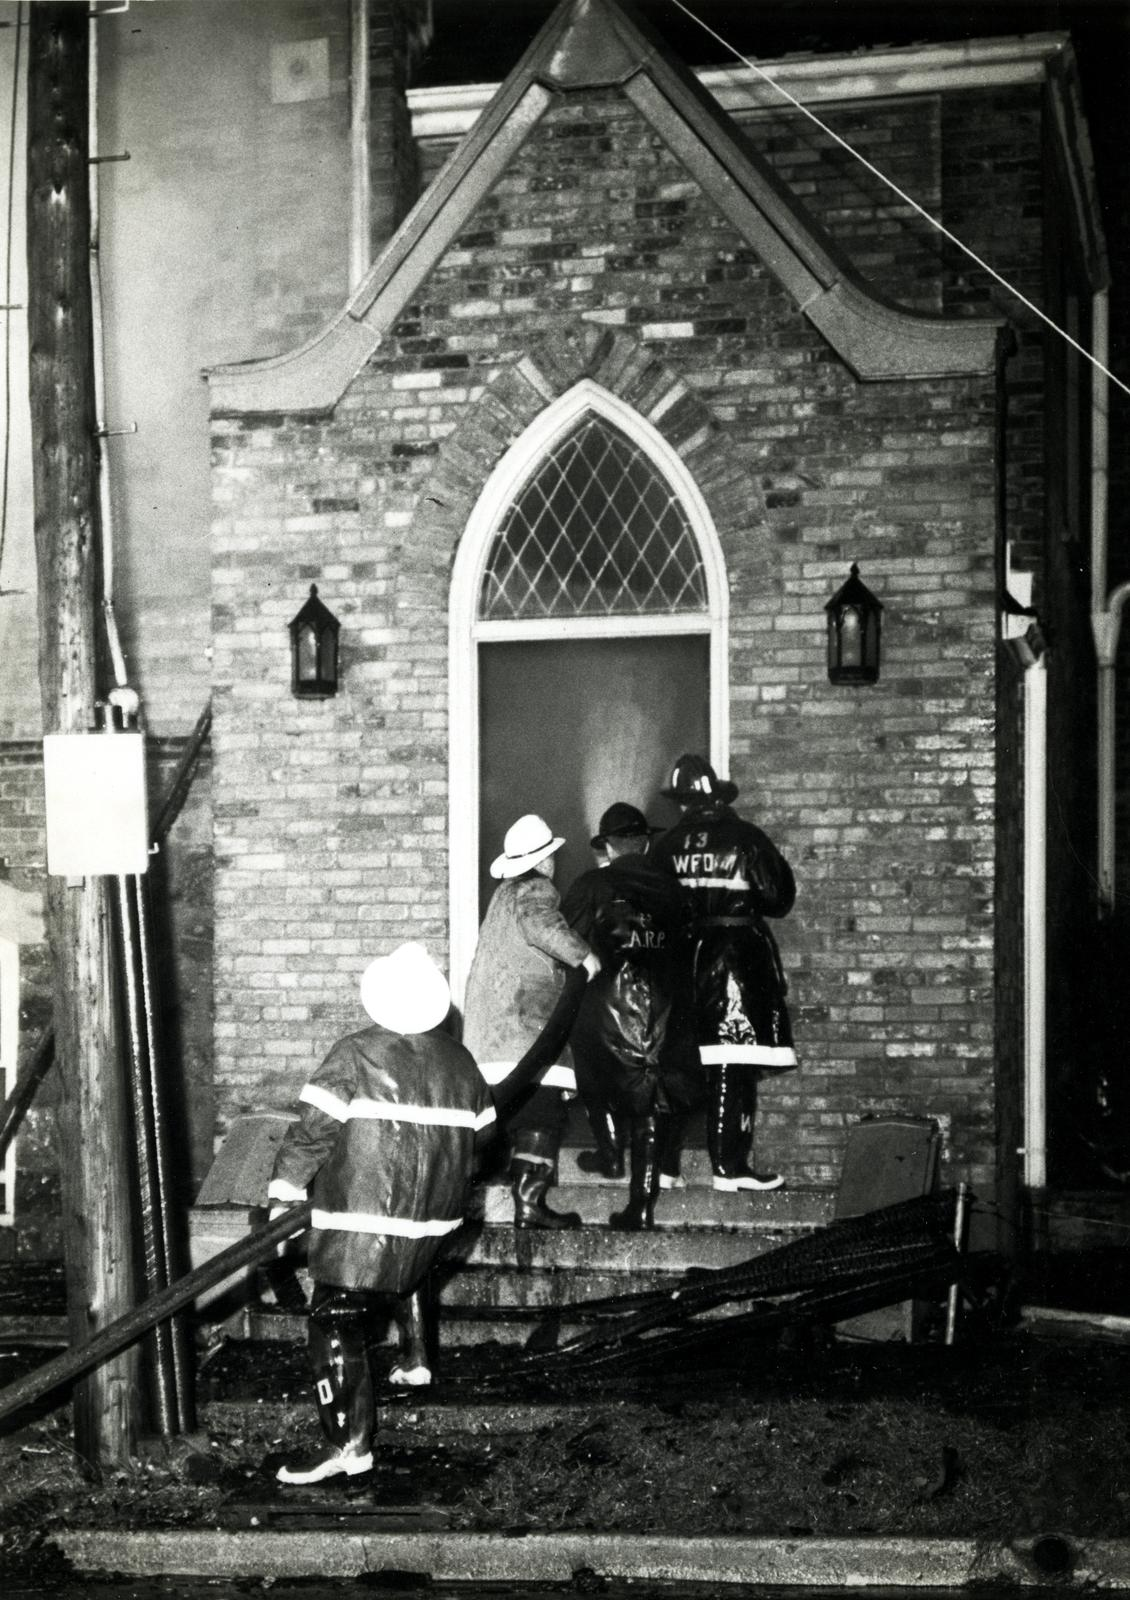 Fire fighters entering St. John's Lutheran Church, Waterloo, Ontario during fire